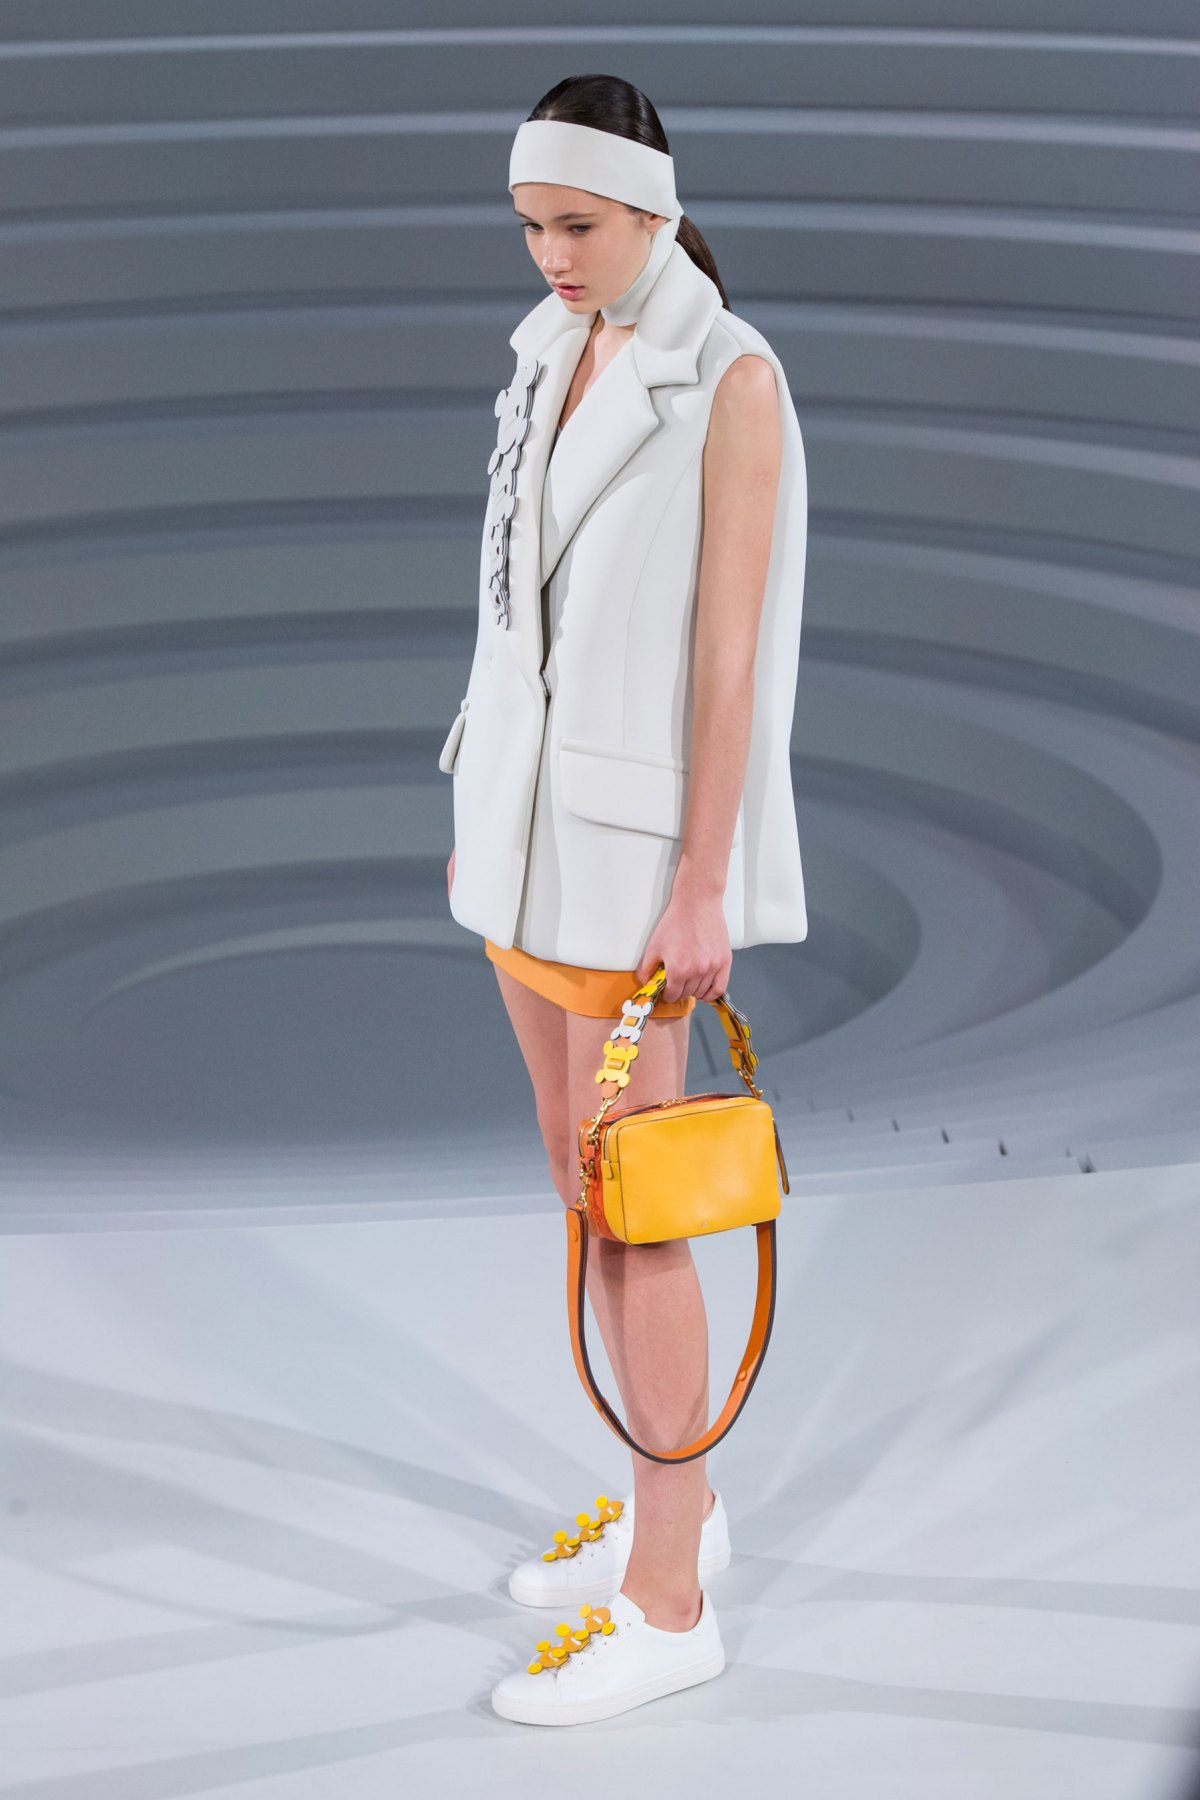 Hindmarch RS17 3206